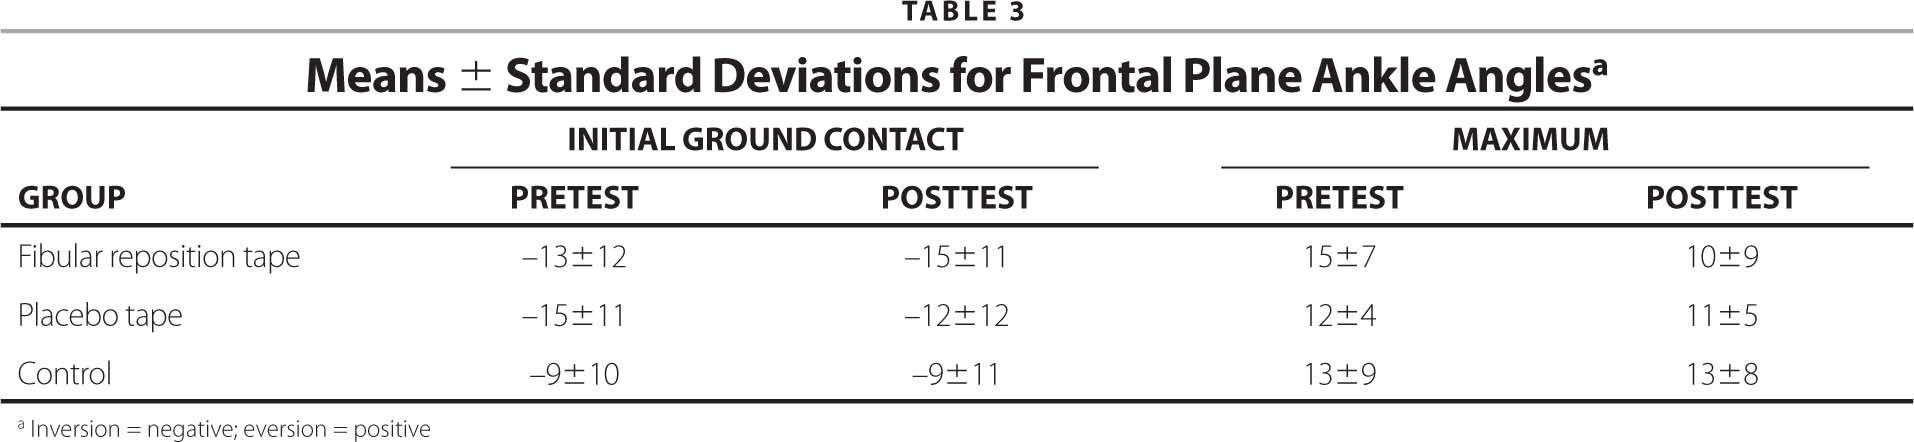 Means ± Standard Deviations for Frontal Plane Ankle Anglesa